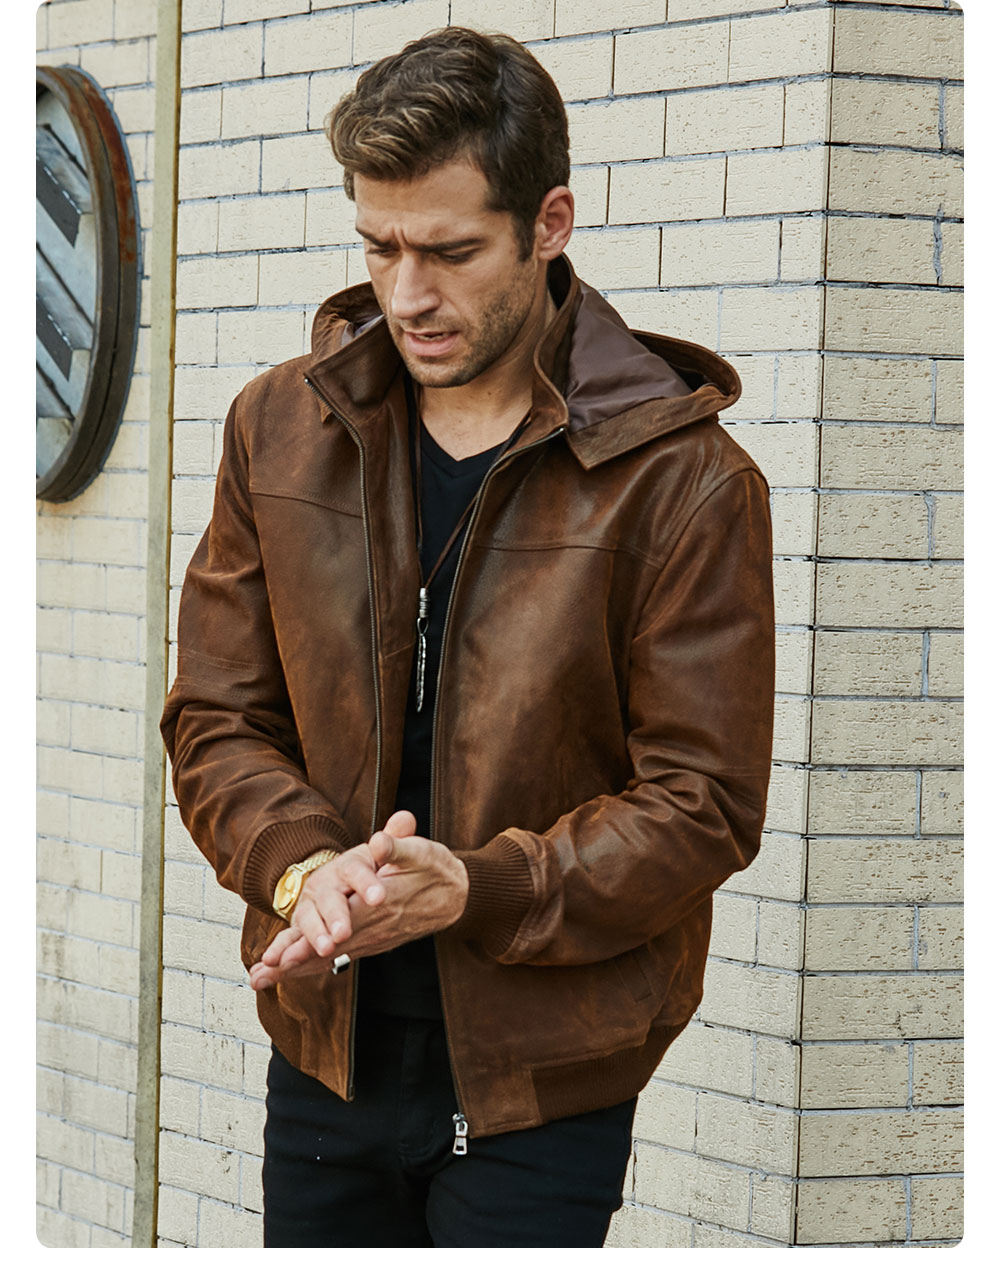 H5cfb2dc3a0cd4005ac86a759dcc740d9d New Men's Winter Jacket Made Of Genuine Pigskin Leather With A Hood, Pigskin Motorcycle Jacket, Natural Leather Jacket